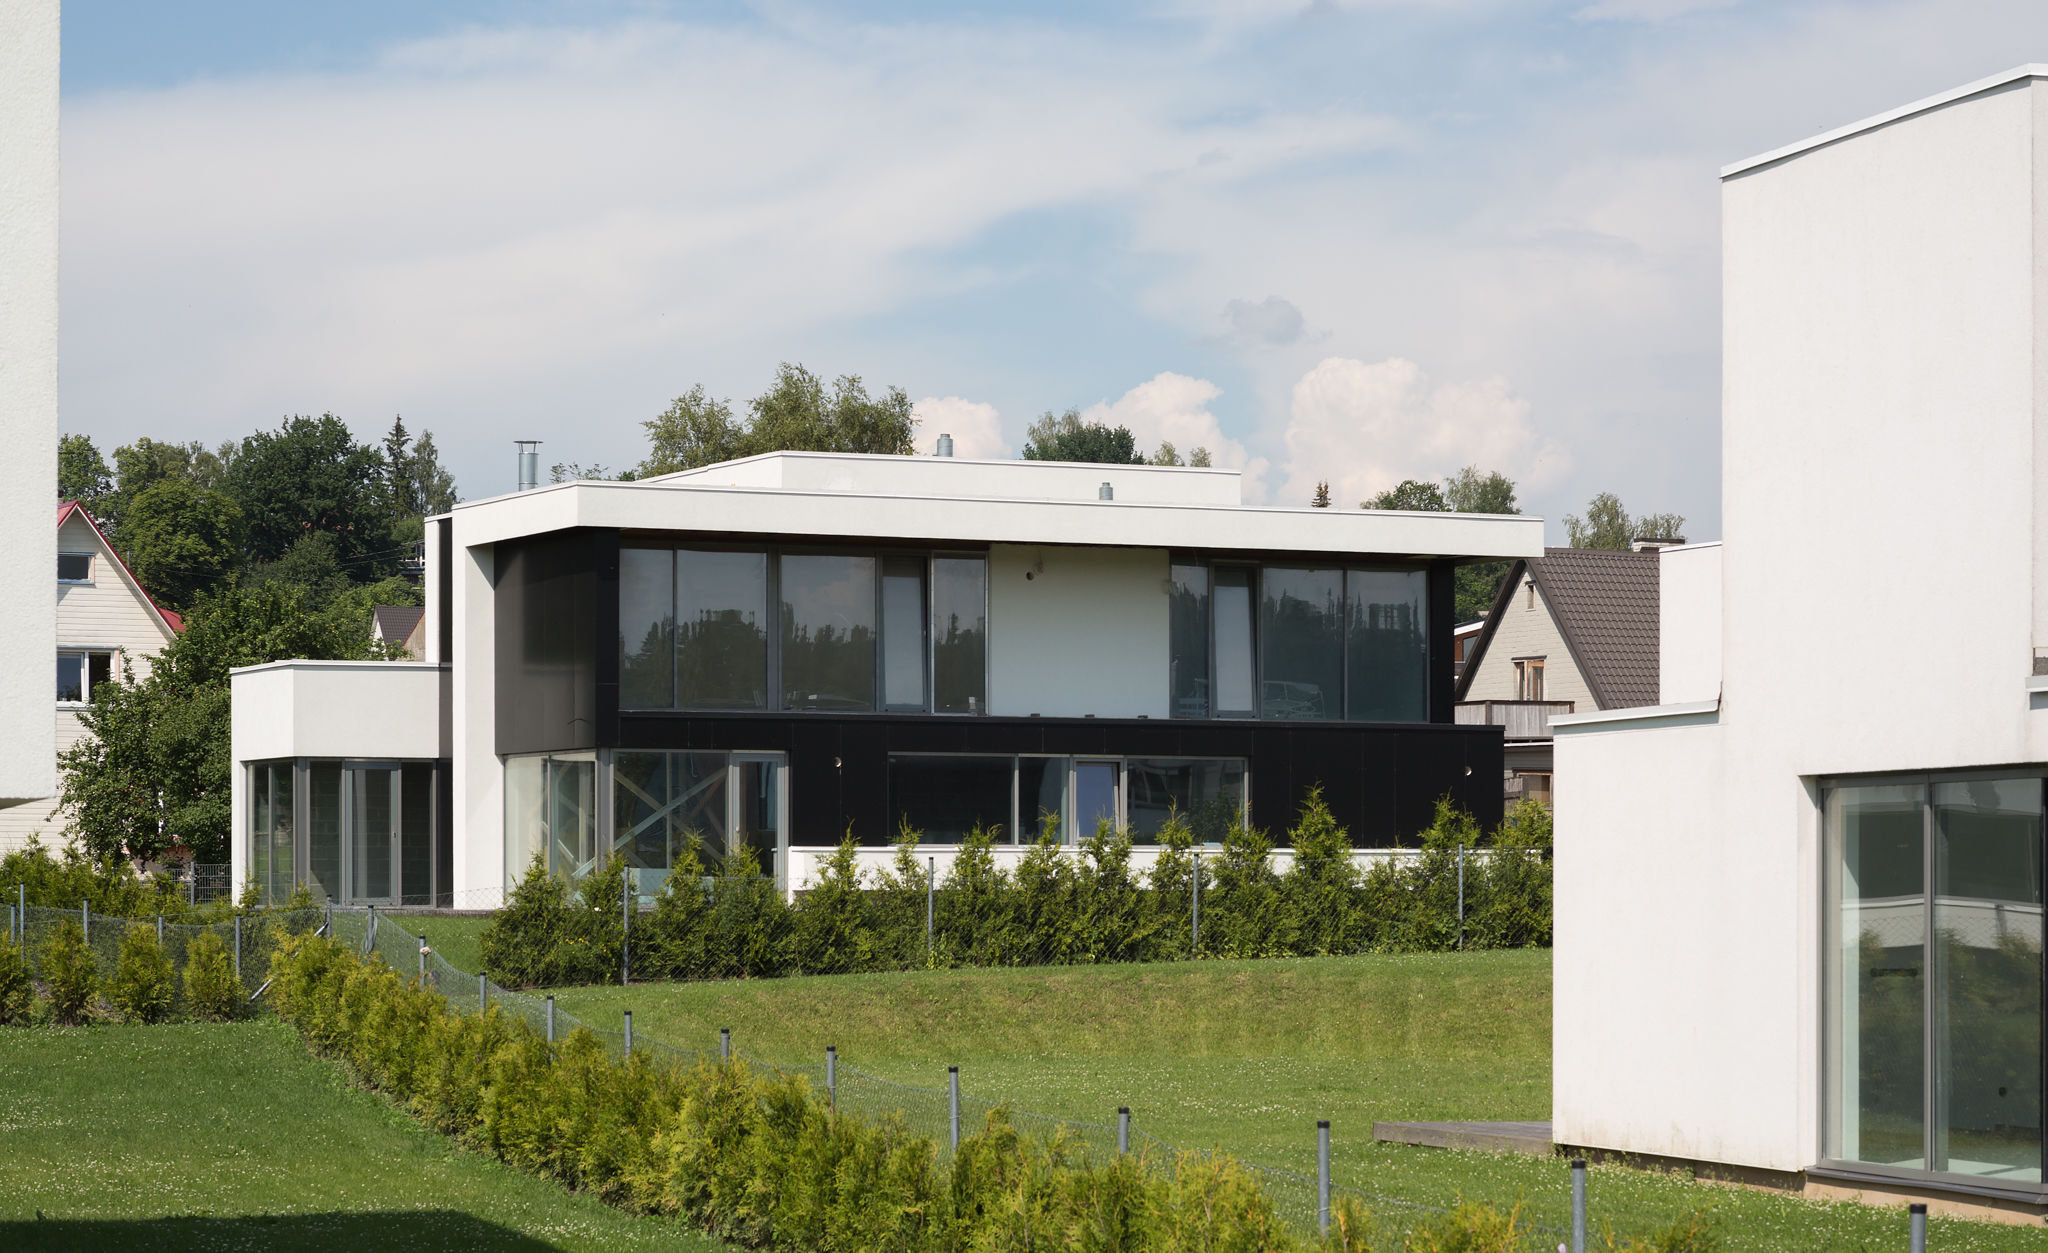 HOUSING AREA WITH 13 PRIVATE RESIDENCES IN VILJANDI